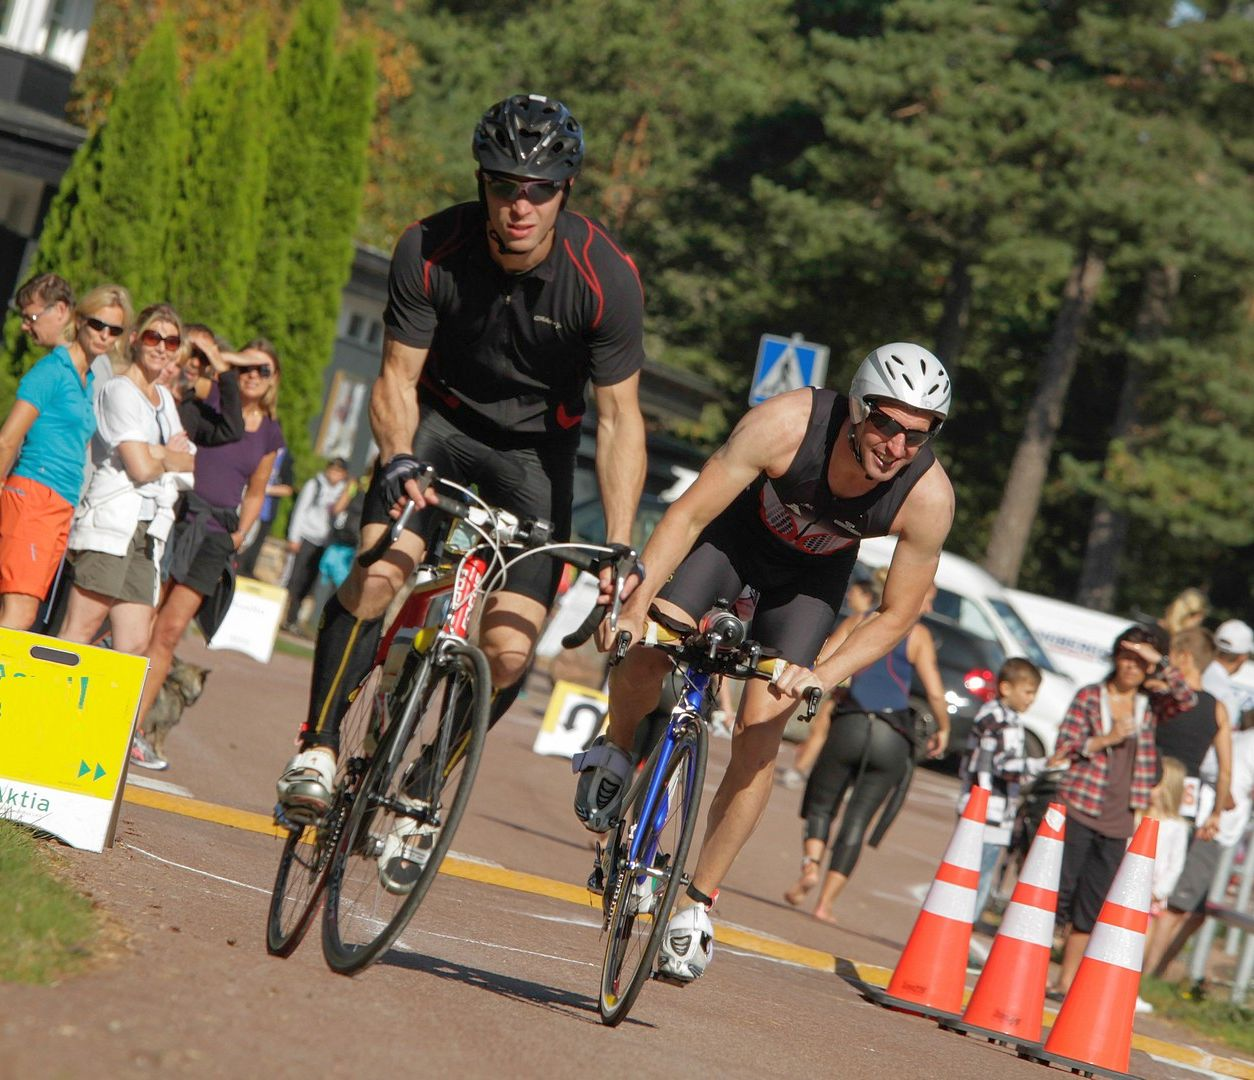 The great Triathlon package